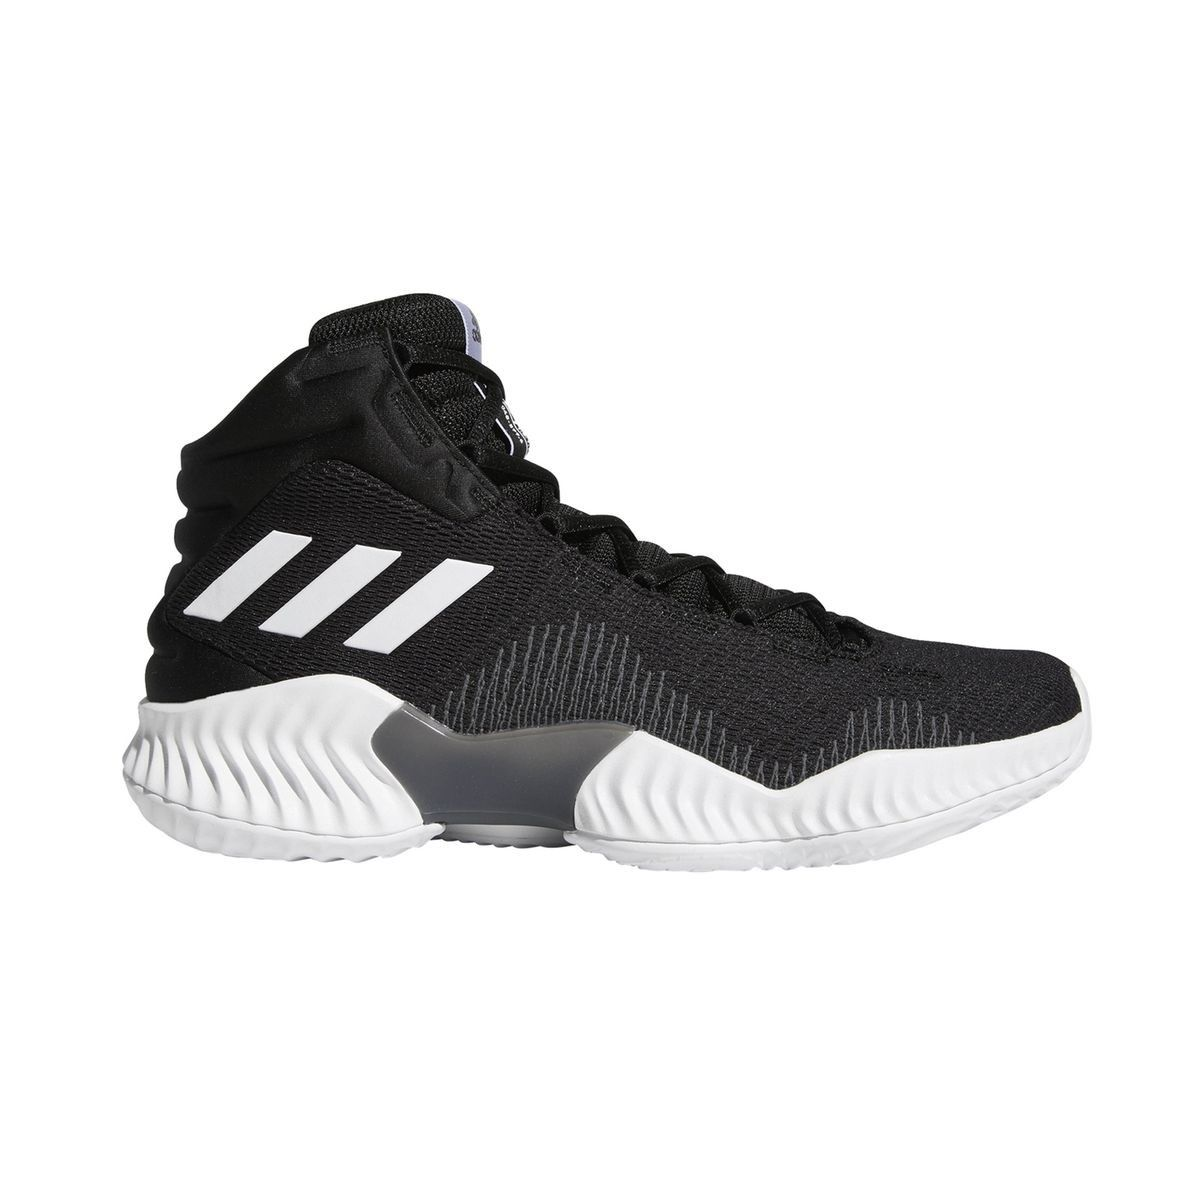 Chaussures Basketball Adidas Pro Bounce 2018 Noir - Taille : 41;42